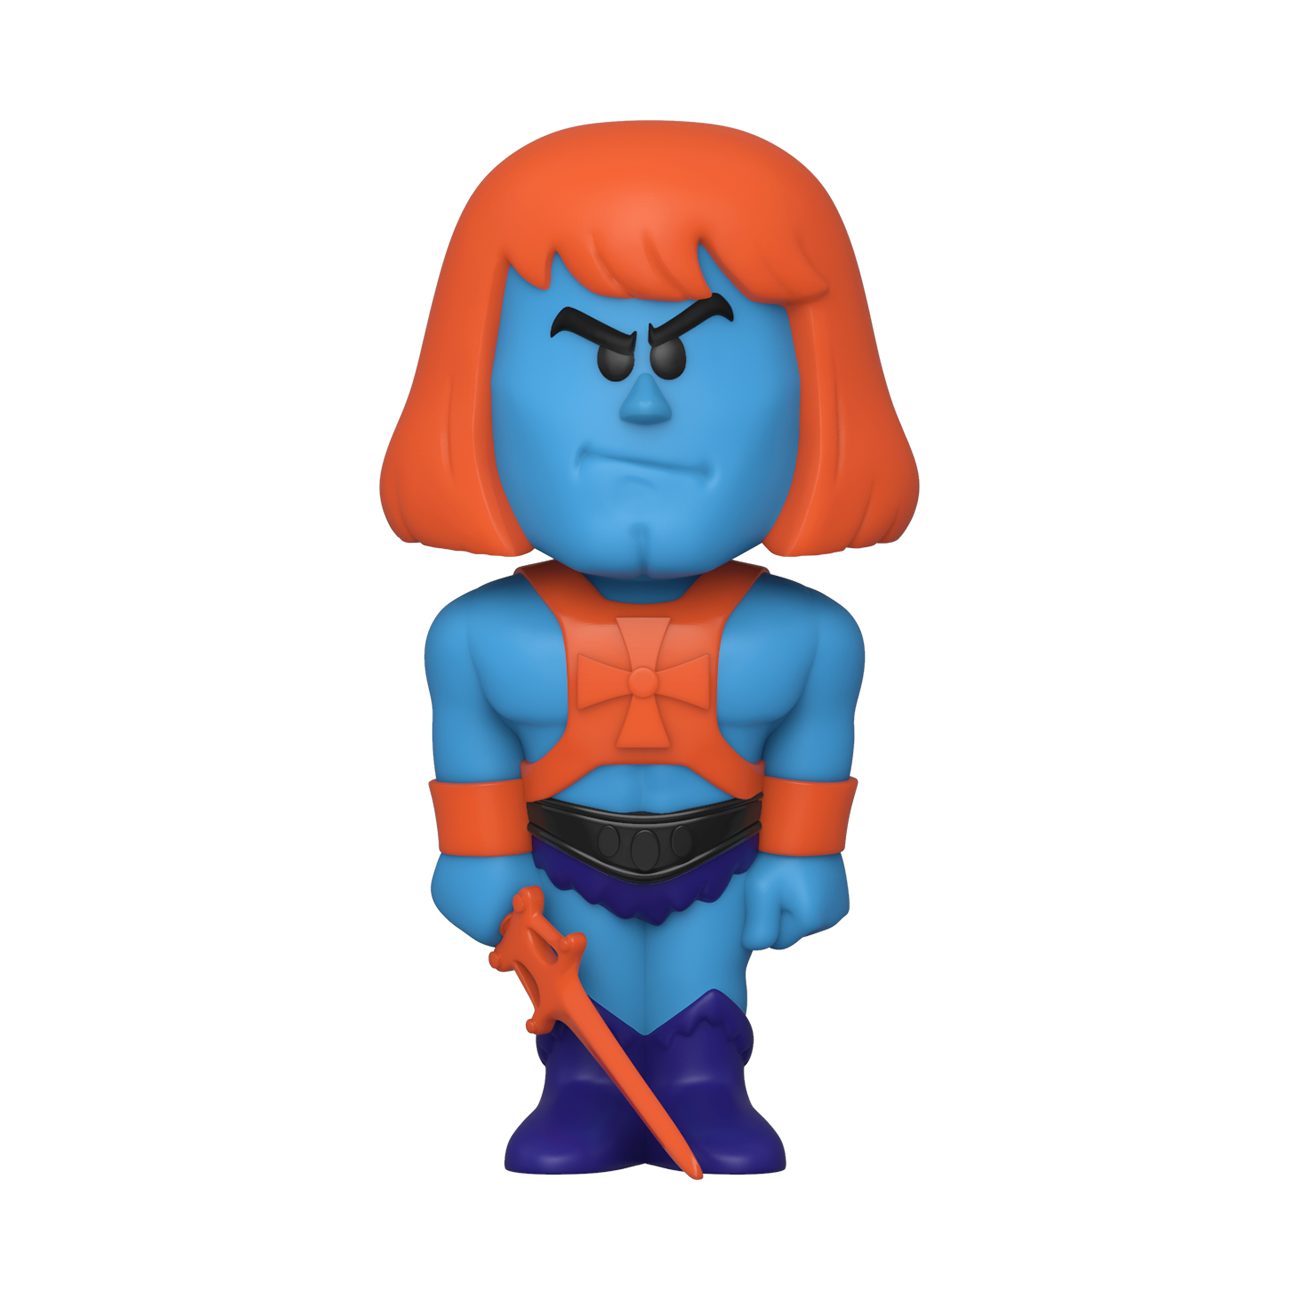 Funko SODA - Masters of the Universe - Faker He-Man (Wondrous Convention Exclusive 2020) - Simply Toys